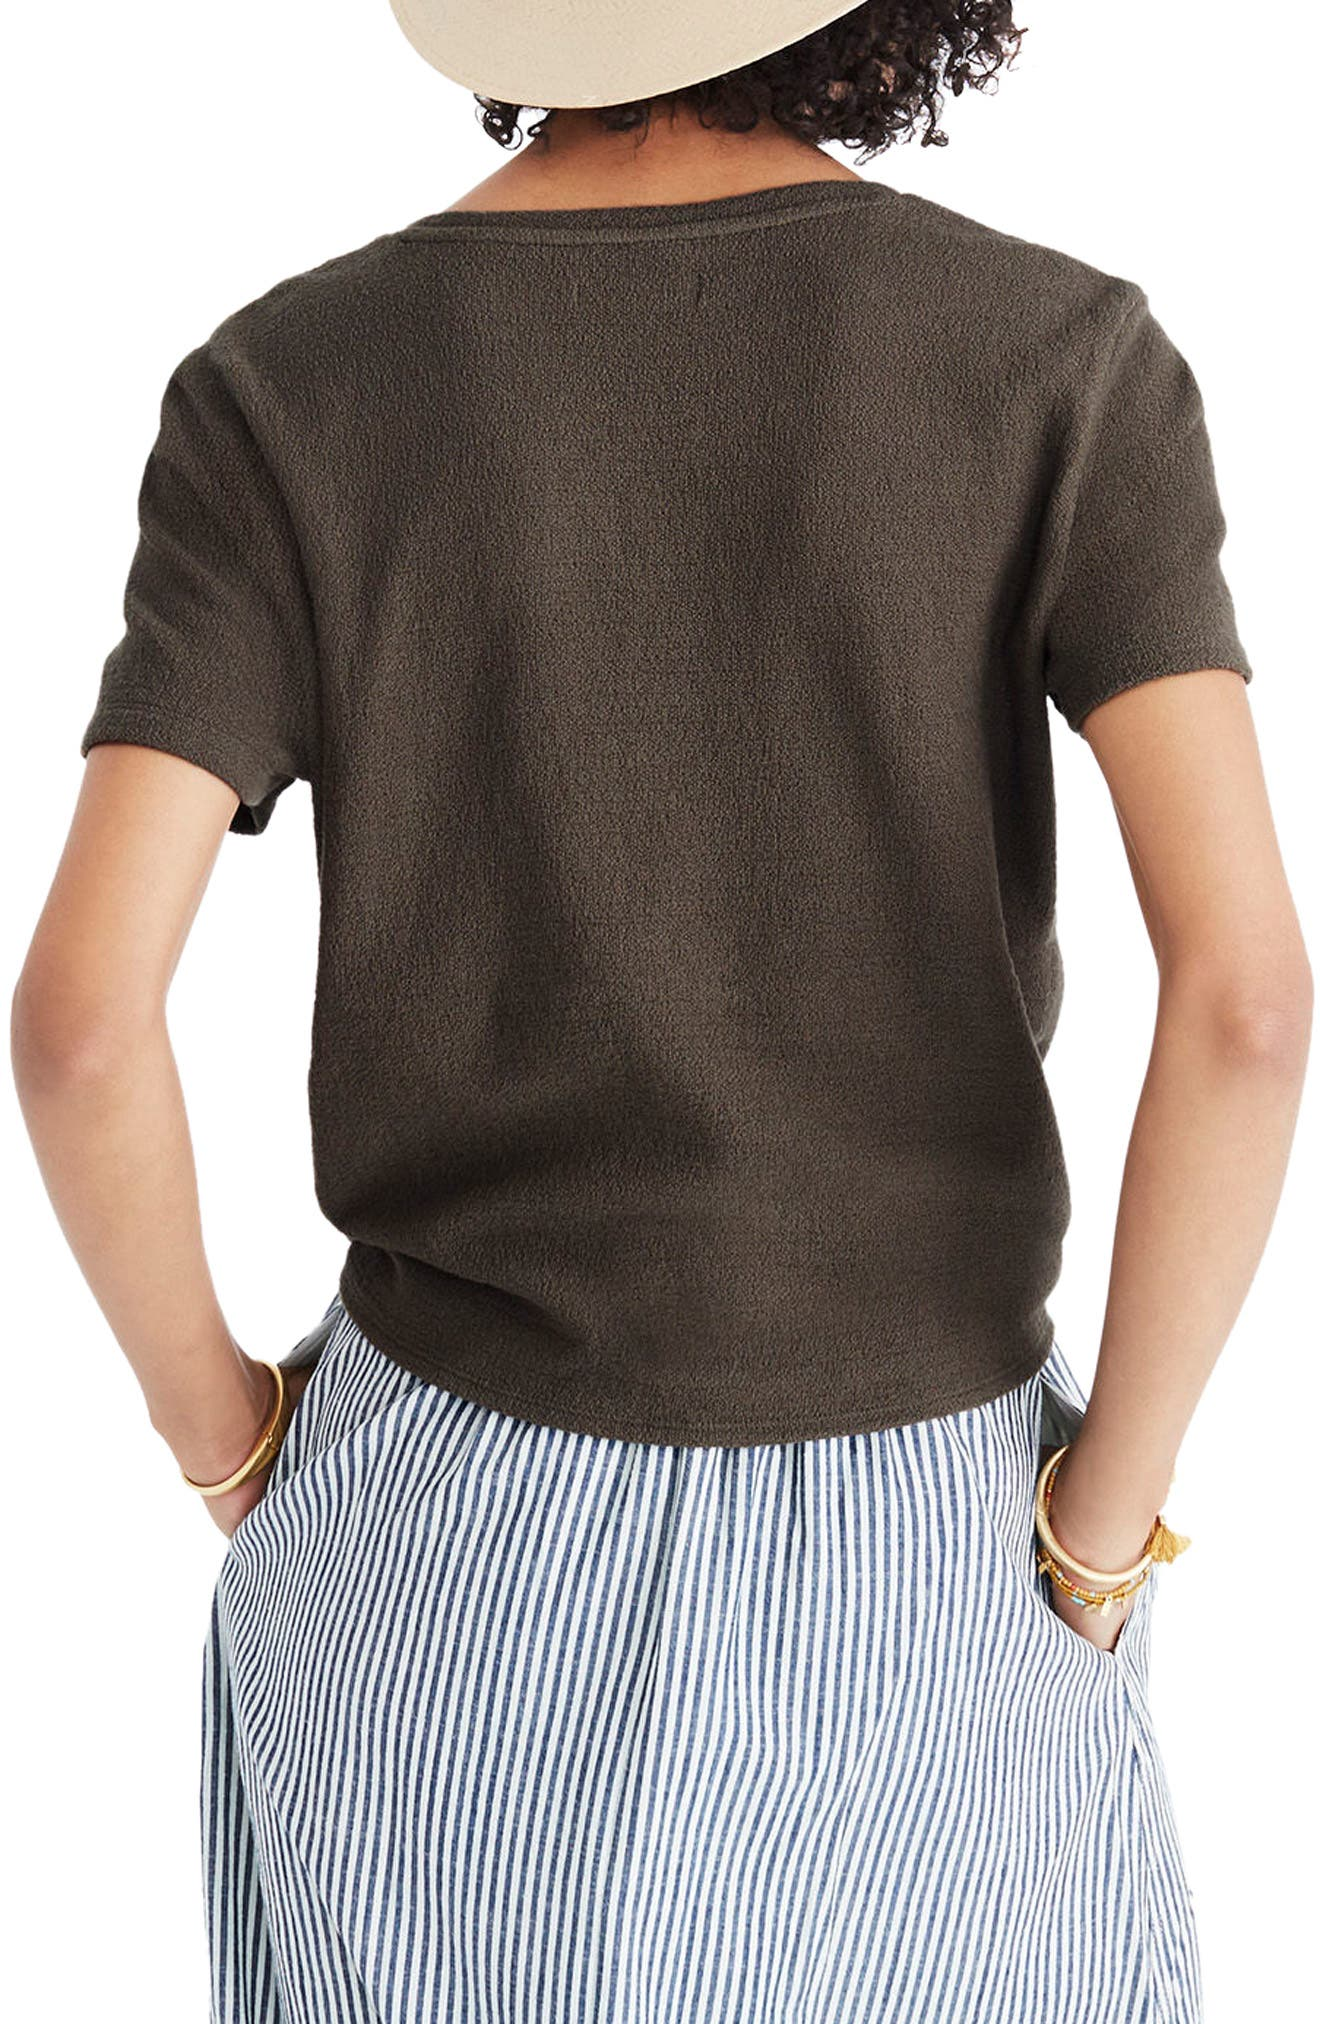 MADEWELL,                             Modern Tie Front Tee,                             Alternate thumbnail 2, color,                             300